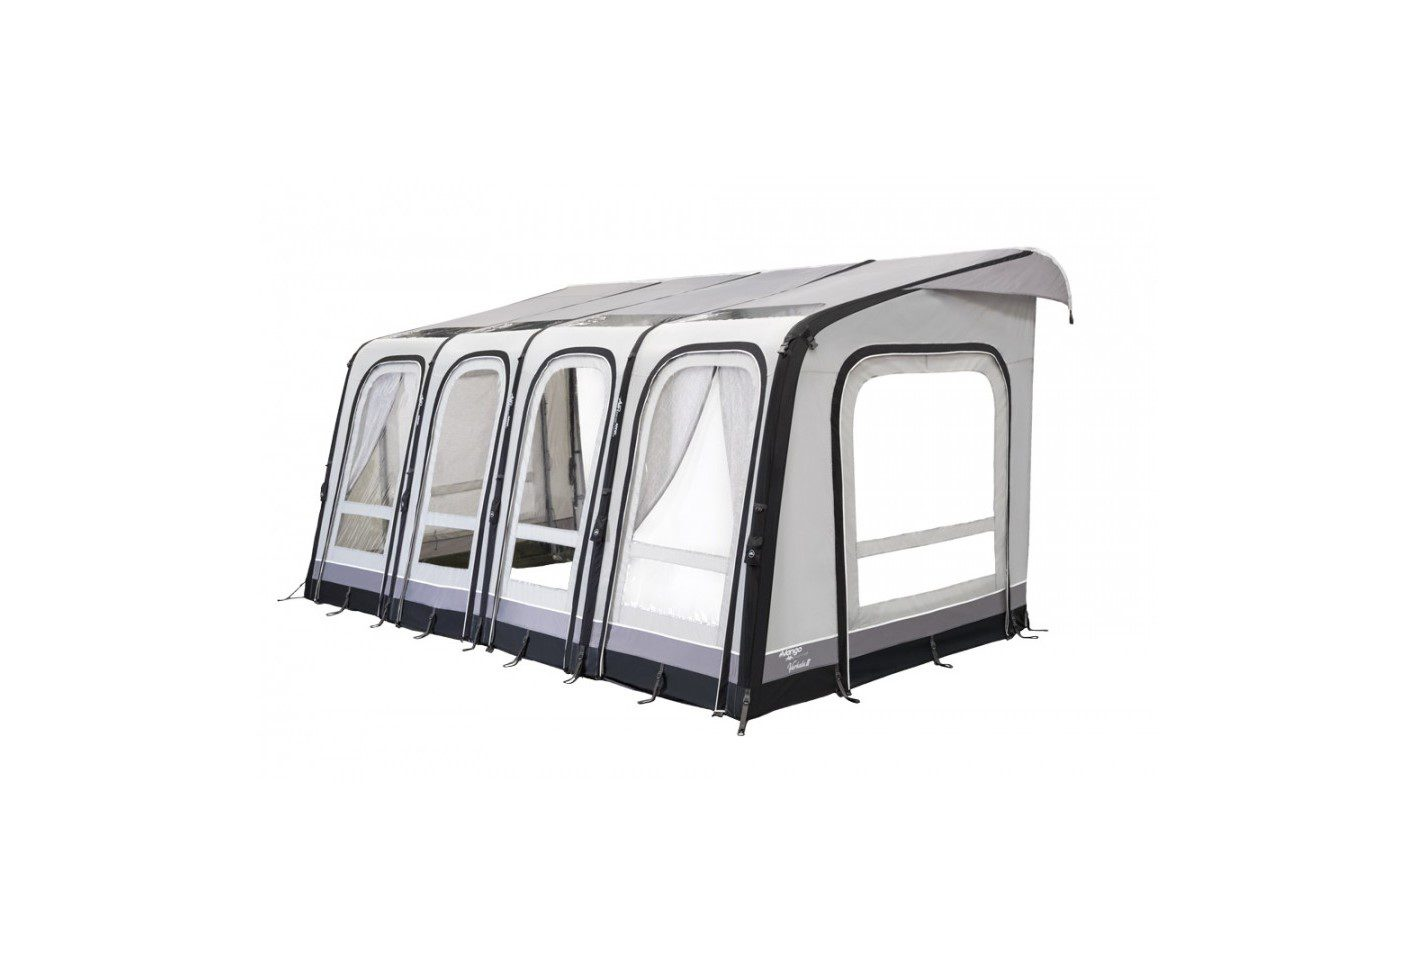 Vango Varkala Connect 520 awning 2018